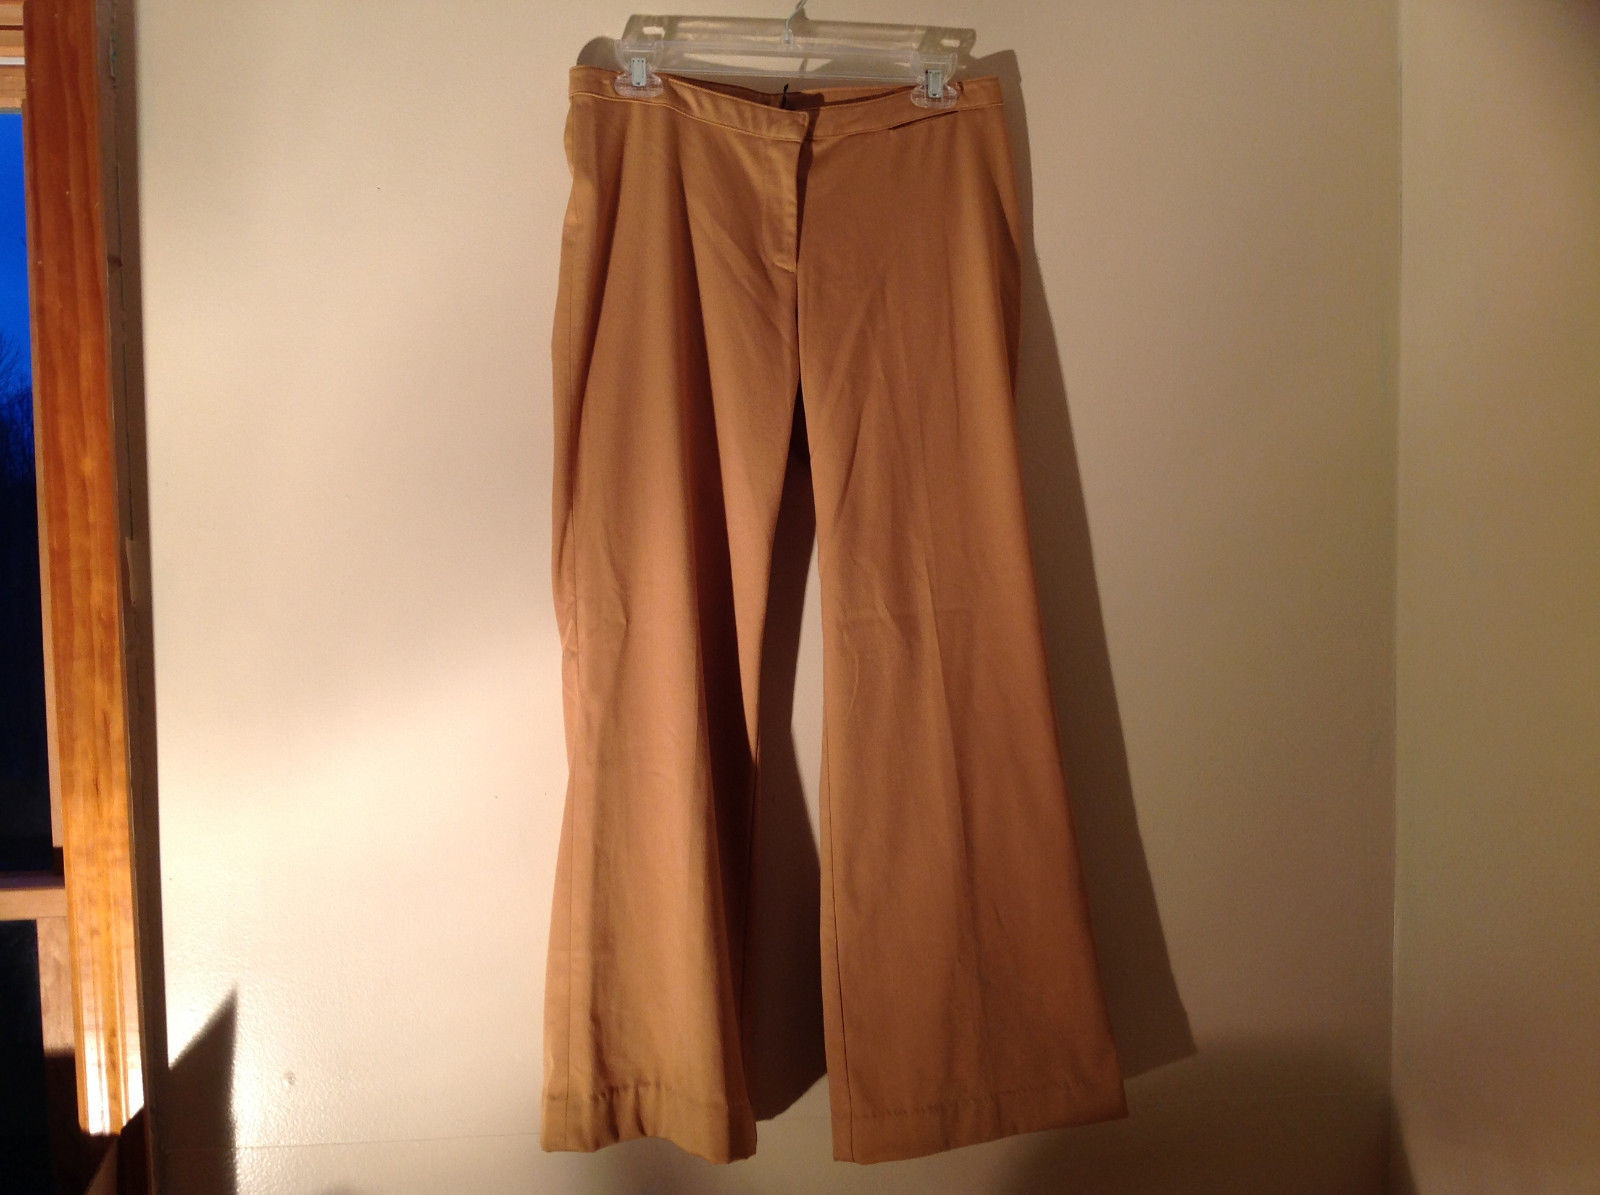 Golden Tan Dress Pants by Divided Zipper Clasp Button Closure Wide Leg Size M